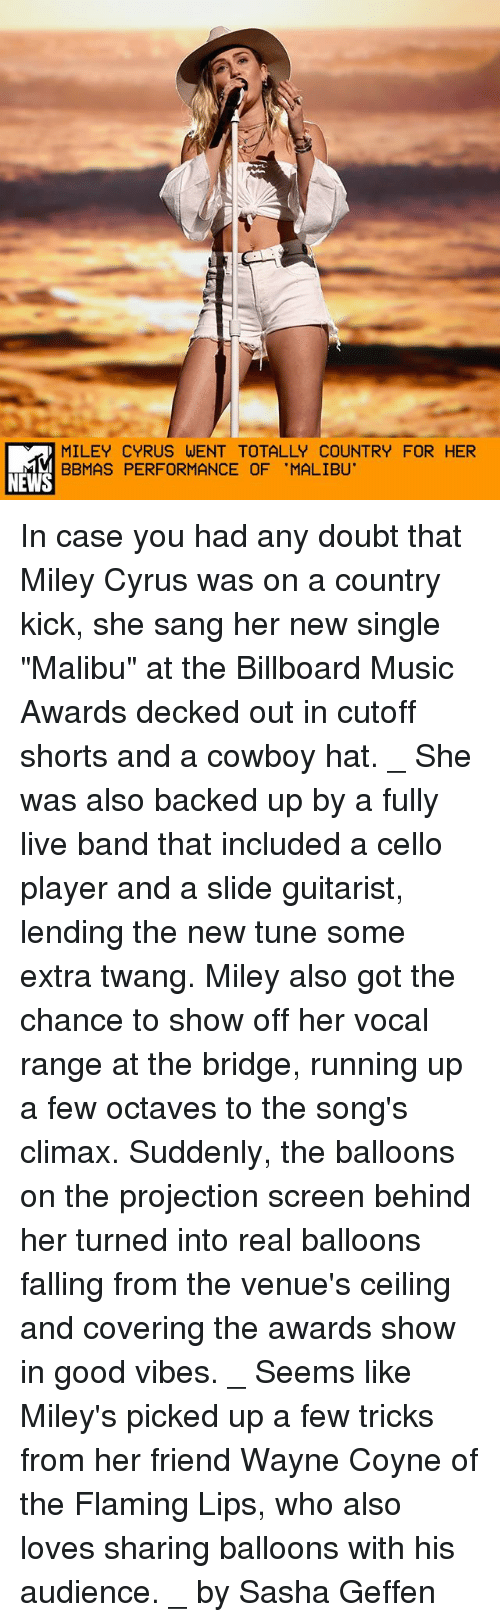 """Decked Out: MILEY CYRUS WENT TOTALLY COUNTRY FOR HER  BBMAS PERFORMANCE OF 'MALIBU'  NEWS In case you had any doubt that Miley Cyrus was on a country kick, she sang her new single """"Malibu"""" at the Billboard Music Awards decked out in cutoff shorts and a cowboy hat. _ She was also backed up by a fully live band that included a cello player and a slide guitarist, lending the new tune some extra twang. Miley also got the chance to show off her vocal range at the bridge, running up a few octaves to the song's climax. Suddenly, the balloons on the projection screen behind her turned into real balloons falling from the venue's ceiling and covering the awards show in good vibes. _ Seems like Miley's picked up a few tricks from her friend Wayne Coyne of the Flaming Lips, who also loves sharing balloons with his audience. _ by Sasha Geffen"""